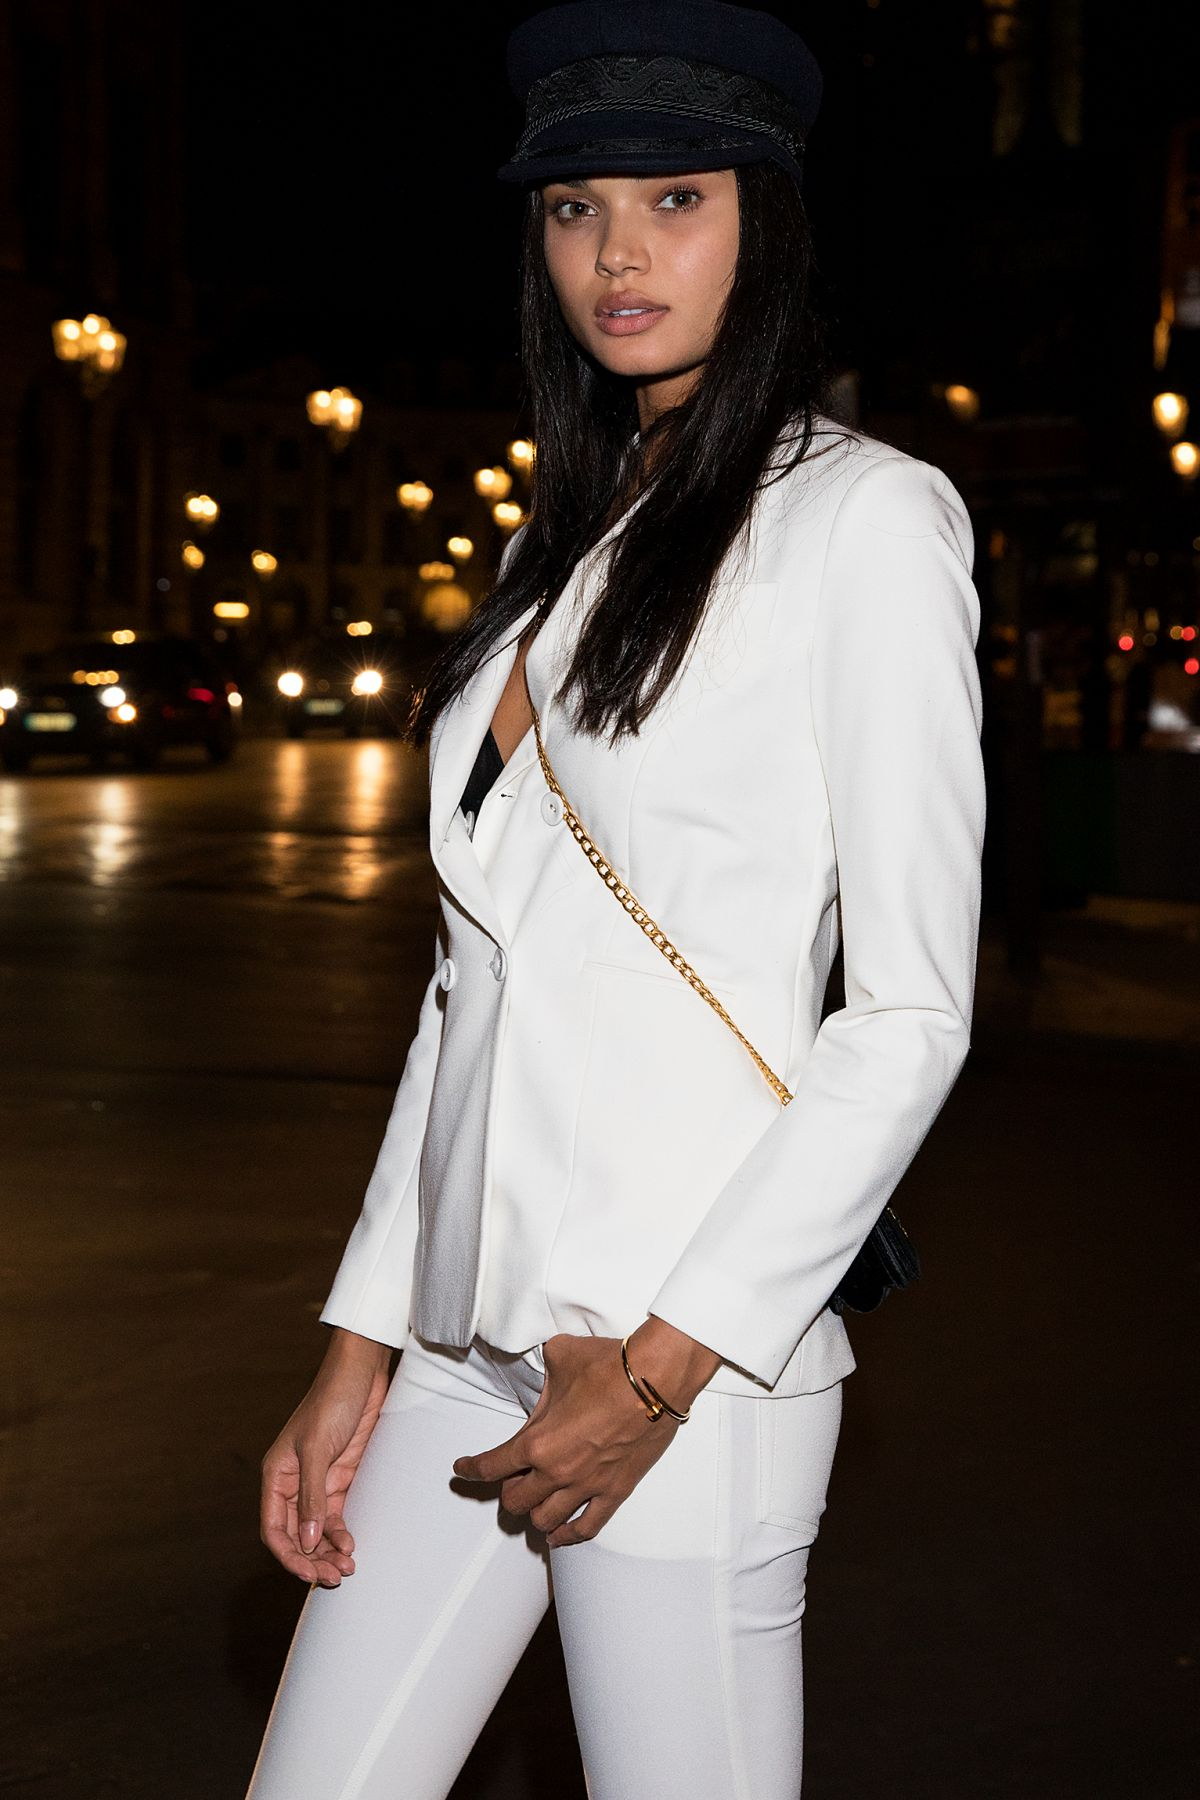 daniela-braga-is-seen-out-and-about-during-the-spring-summer-2018-paris-fashion-week-in-paris-5.jpg